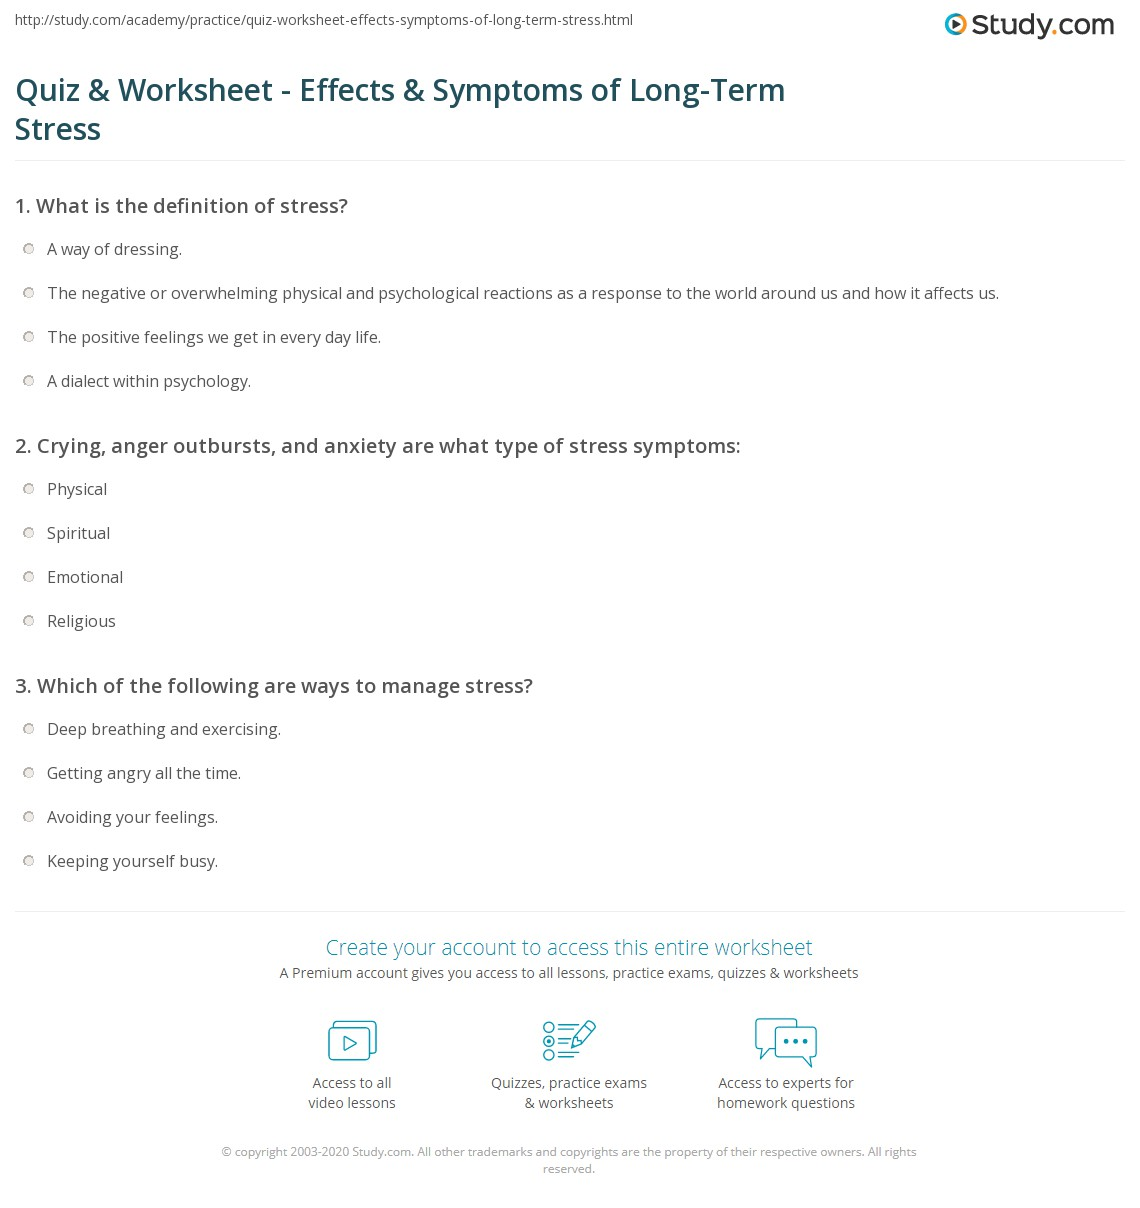 image regarding Anger Management Quiz Printable titled Worksheet Anger Outbursts Estimates of the Working day